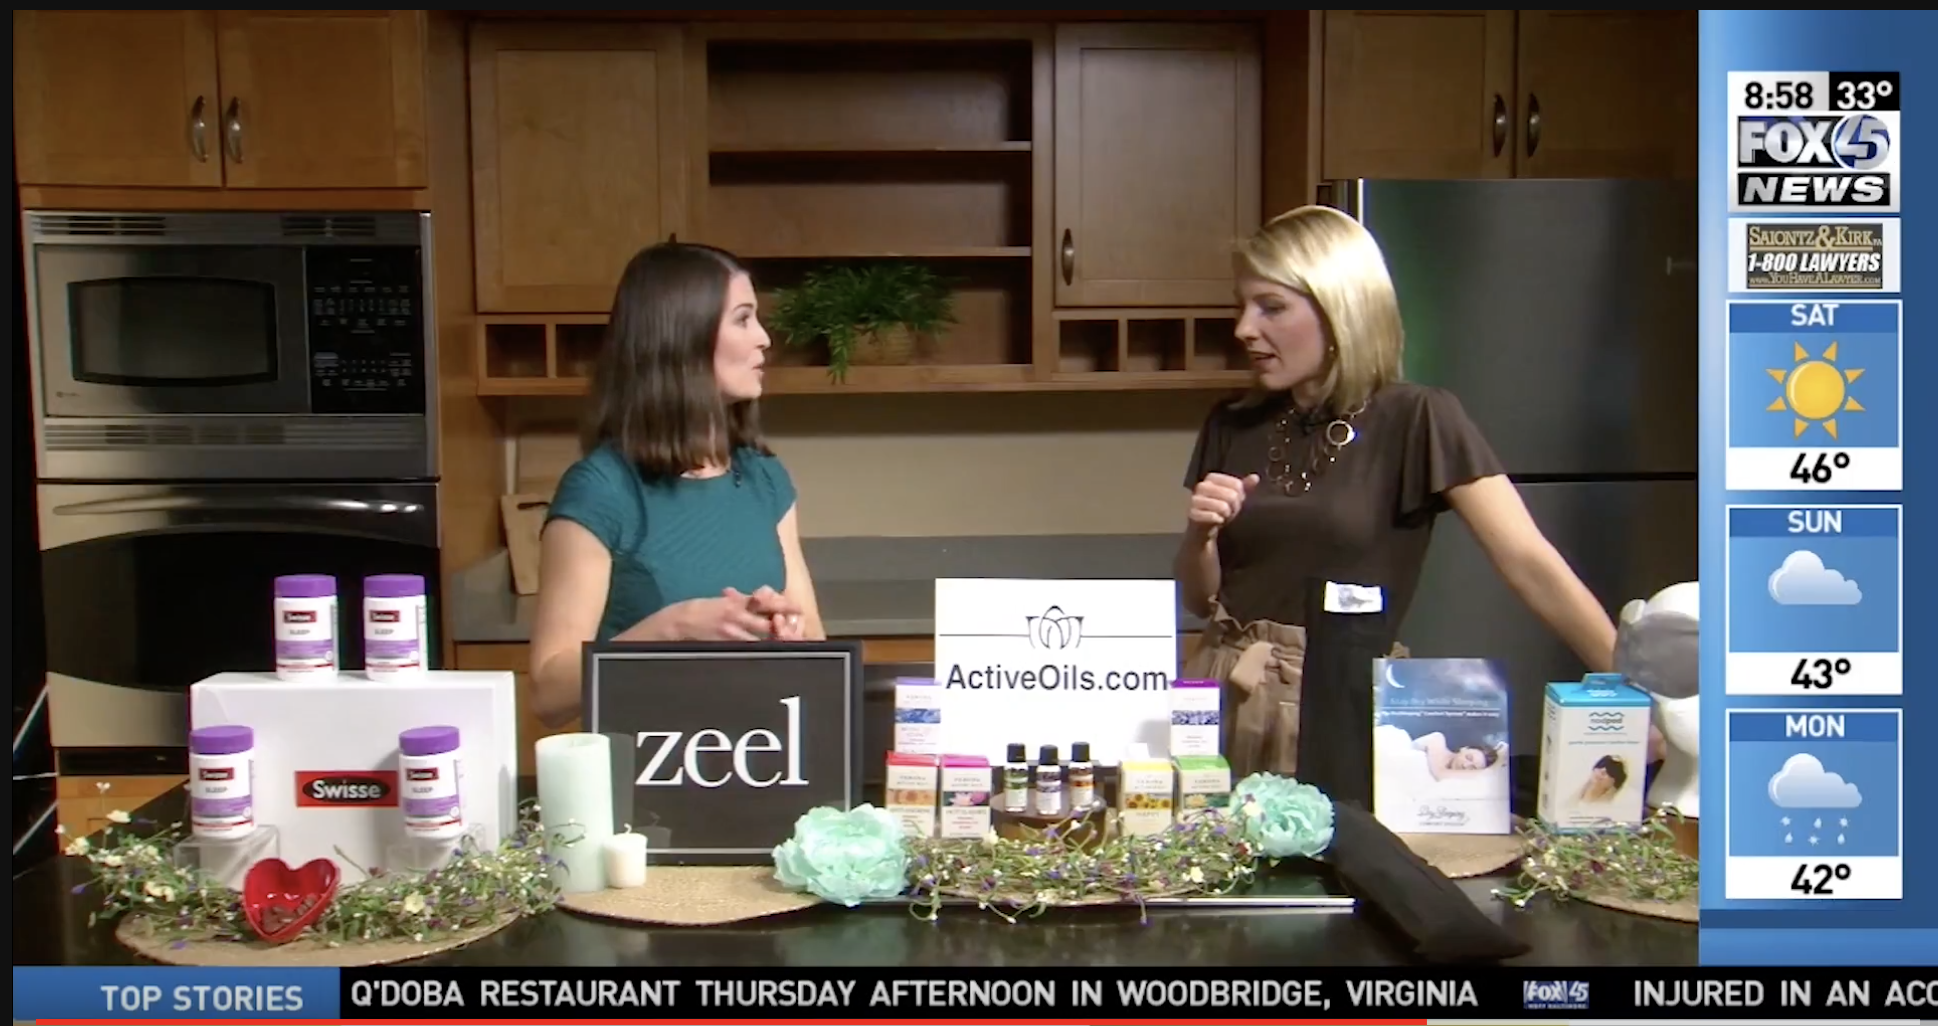 Sleep Week with Zeel on FOX45